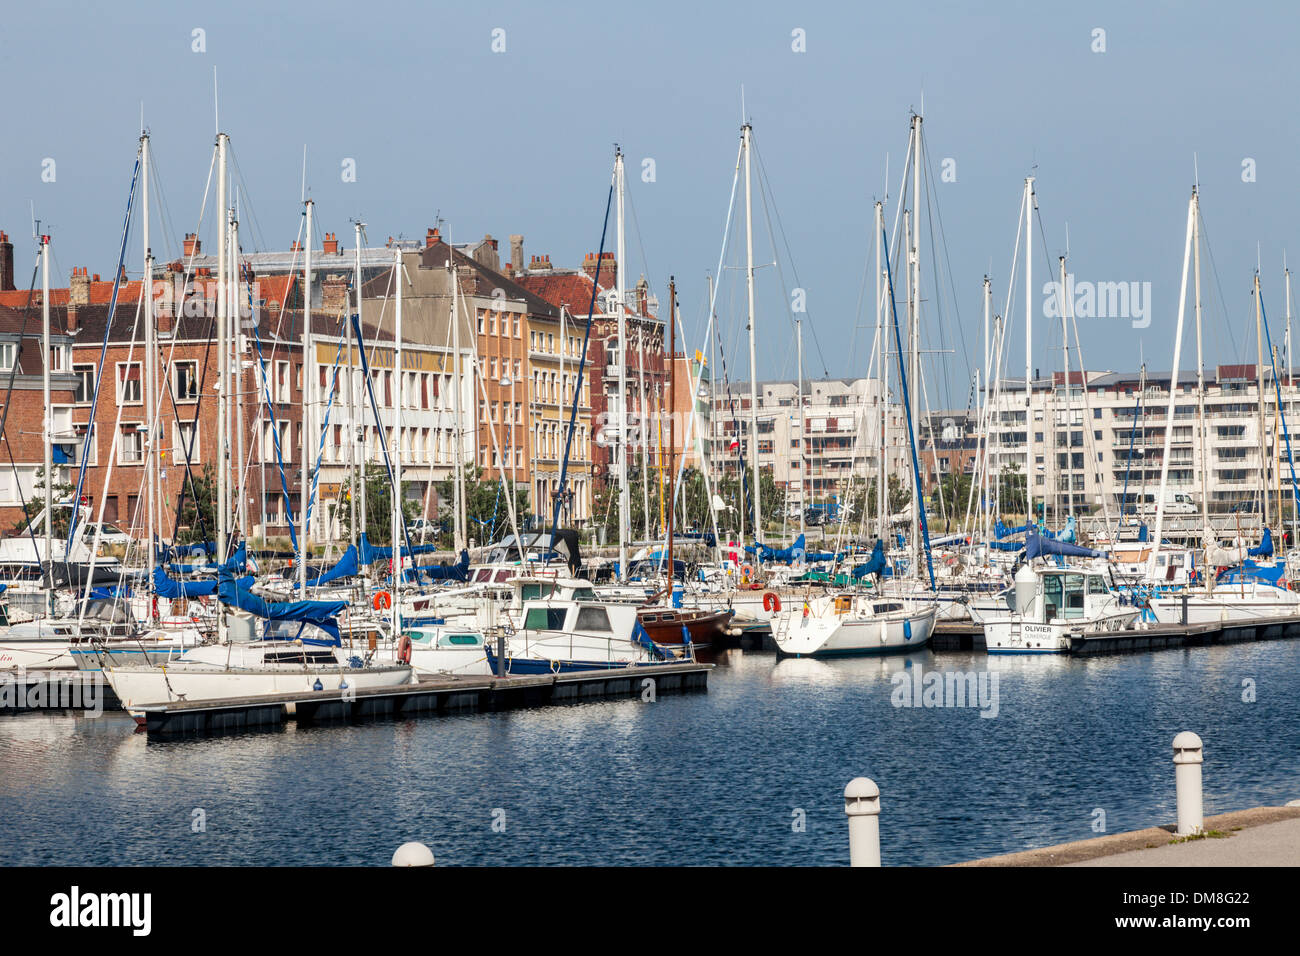 Harbour with boats at Dunkirk, Dunkirque, France - Stock Image